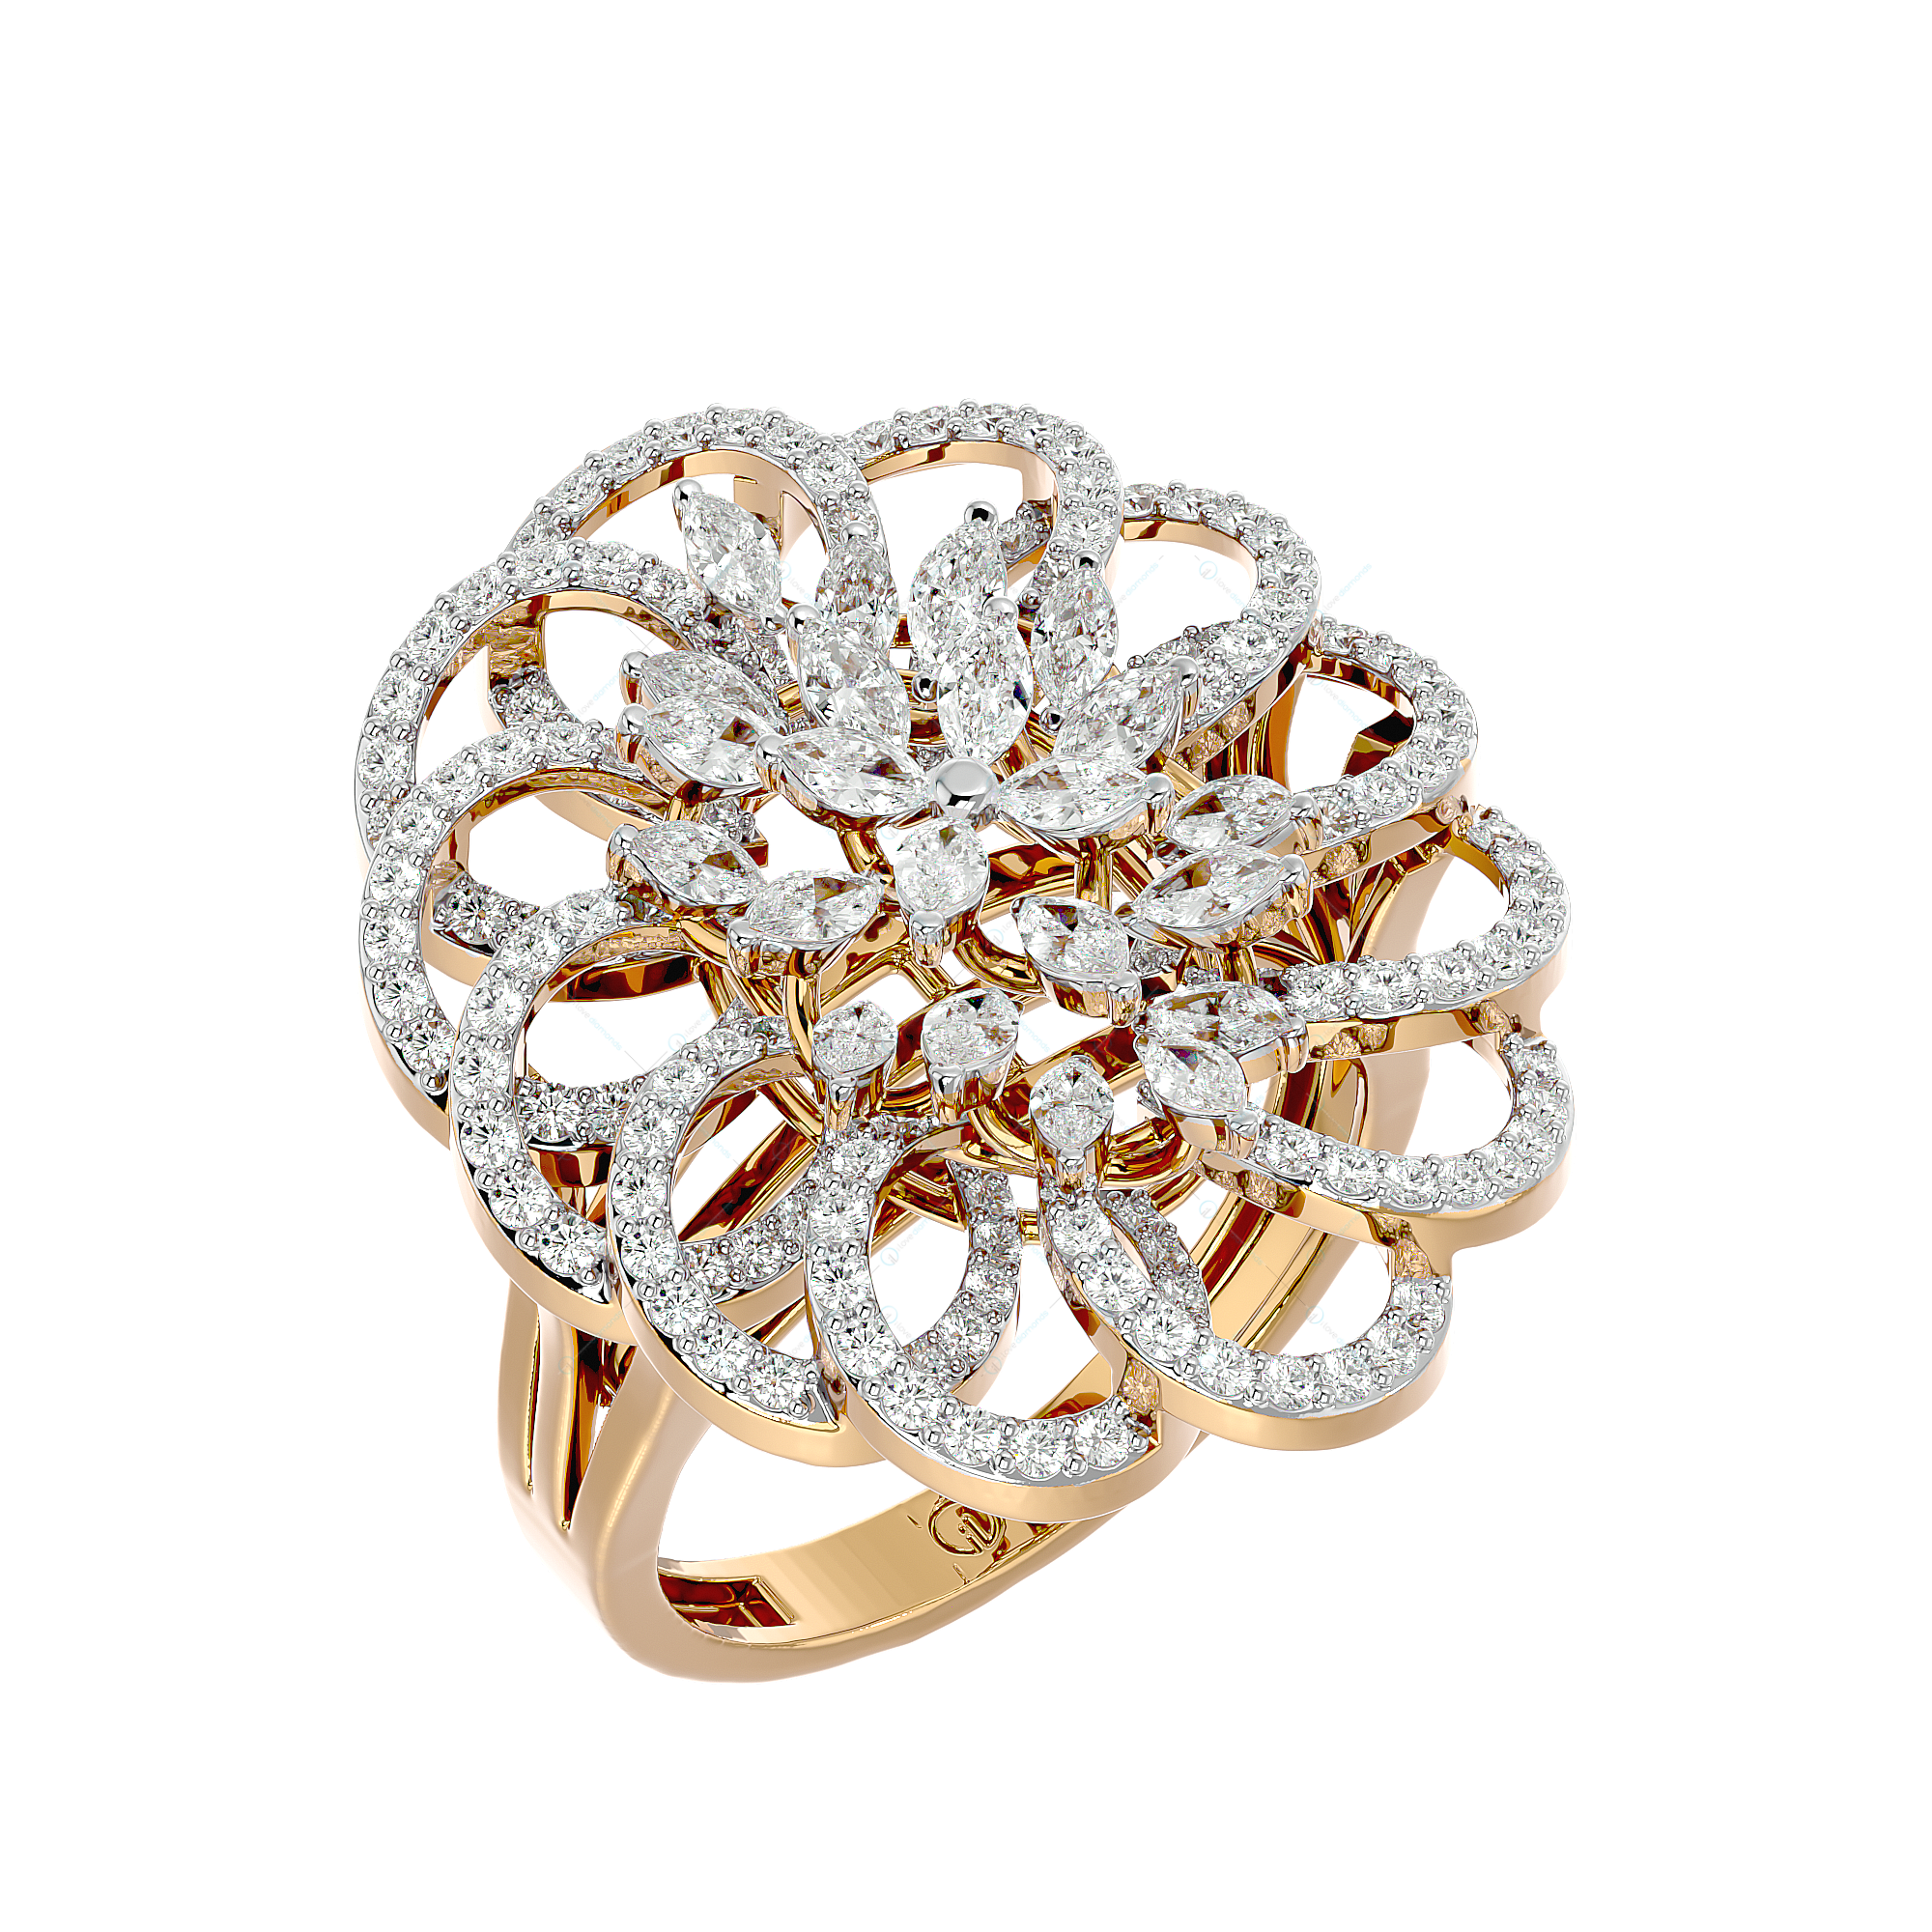 Blooming Opulence Diamond Ring In Yellow Gold For Women v1